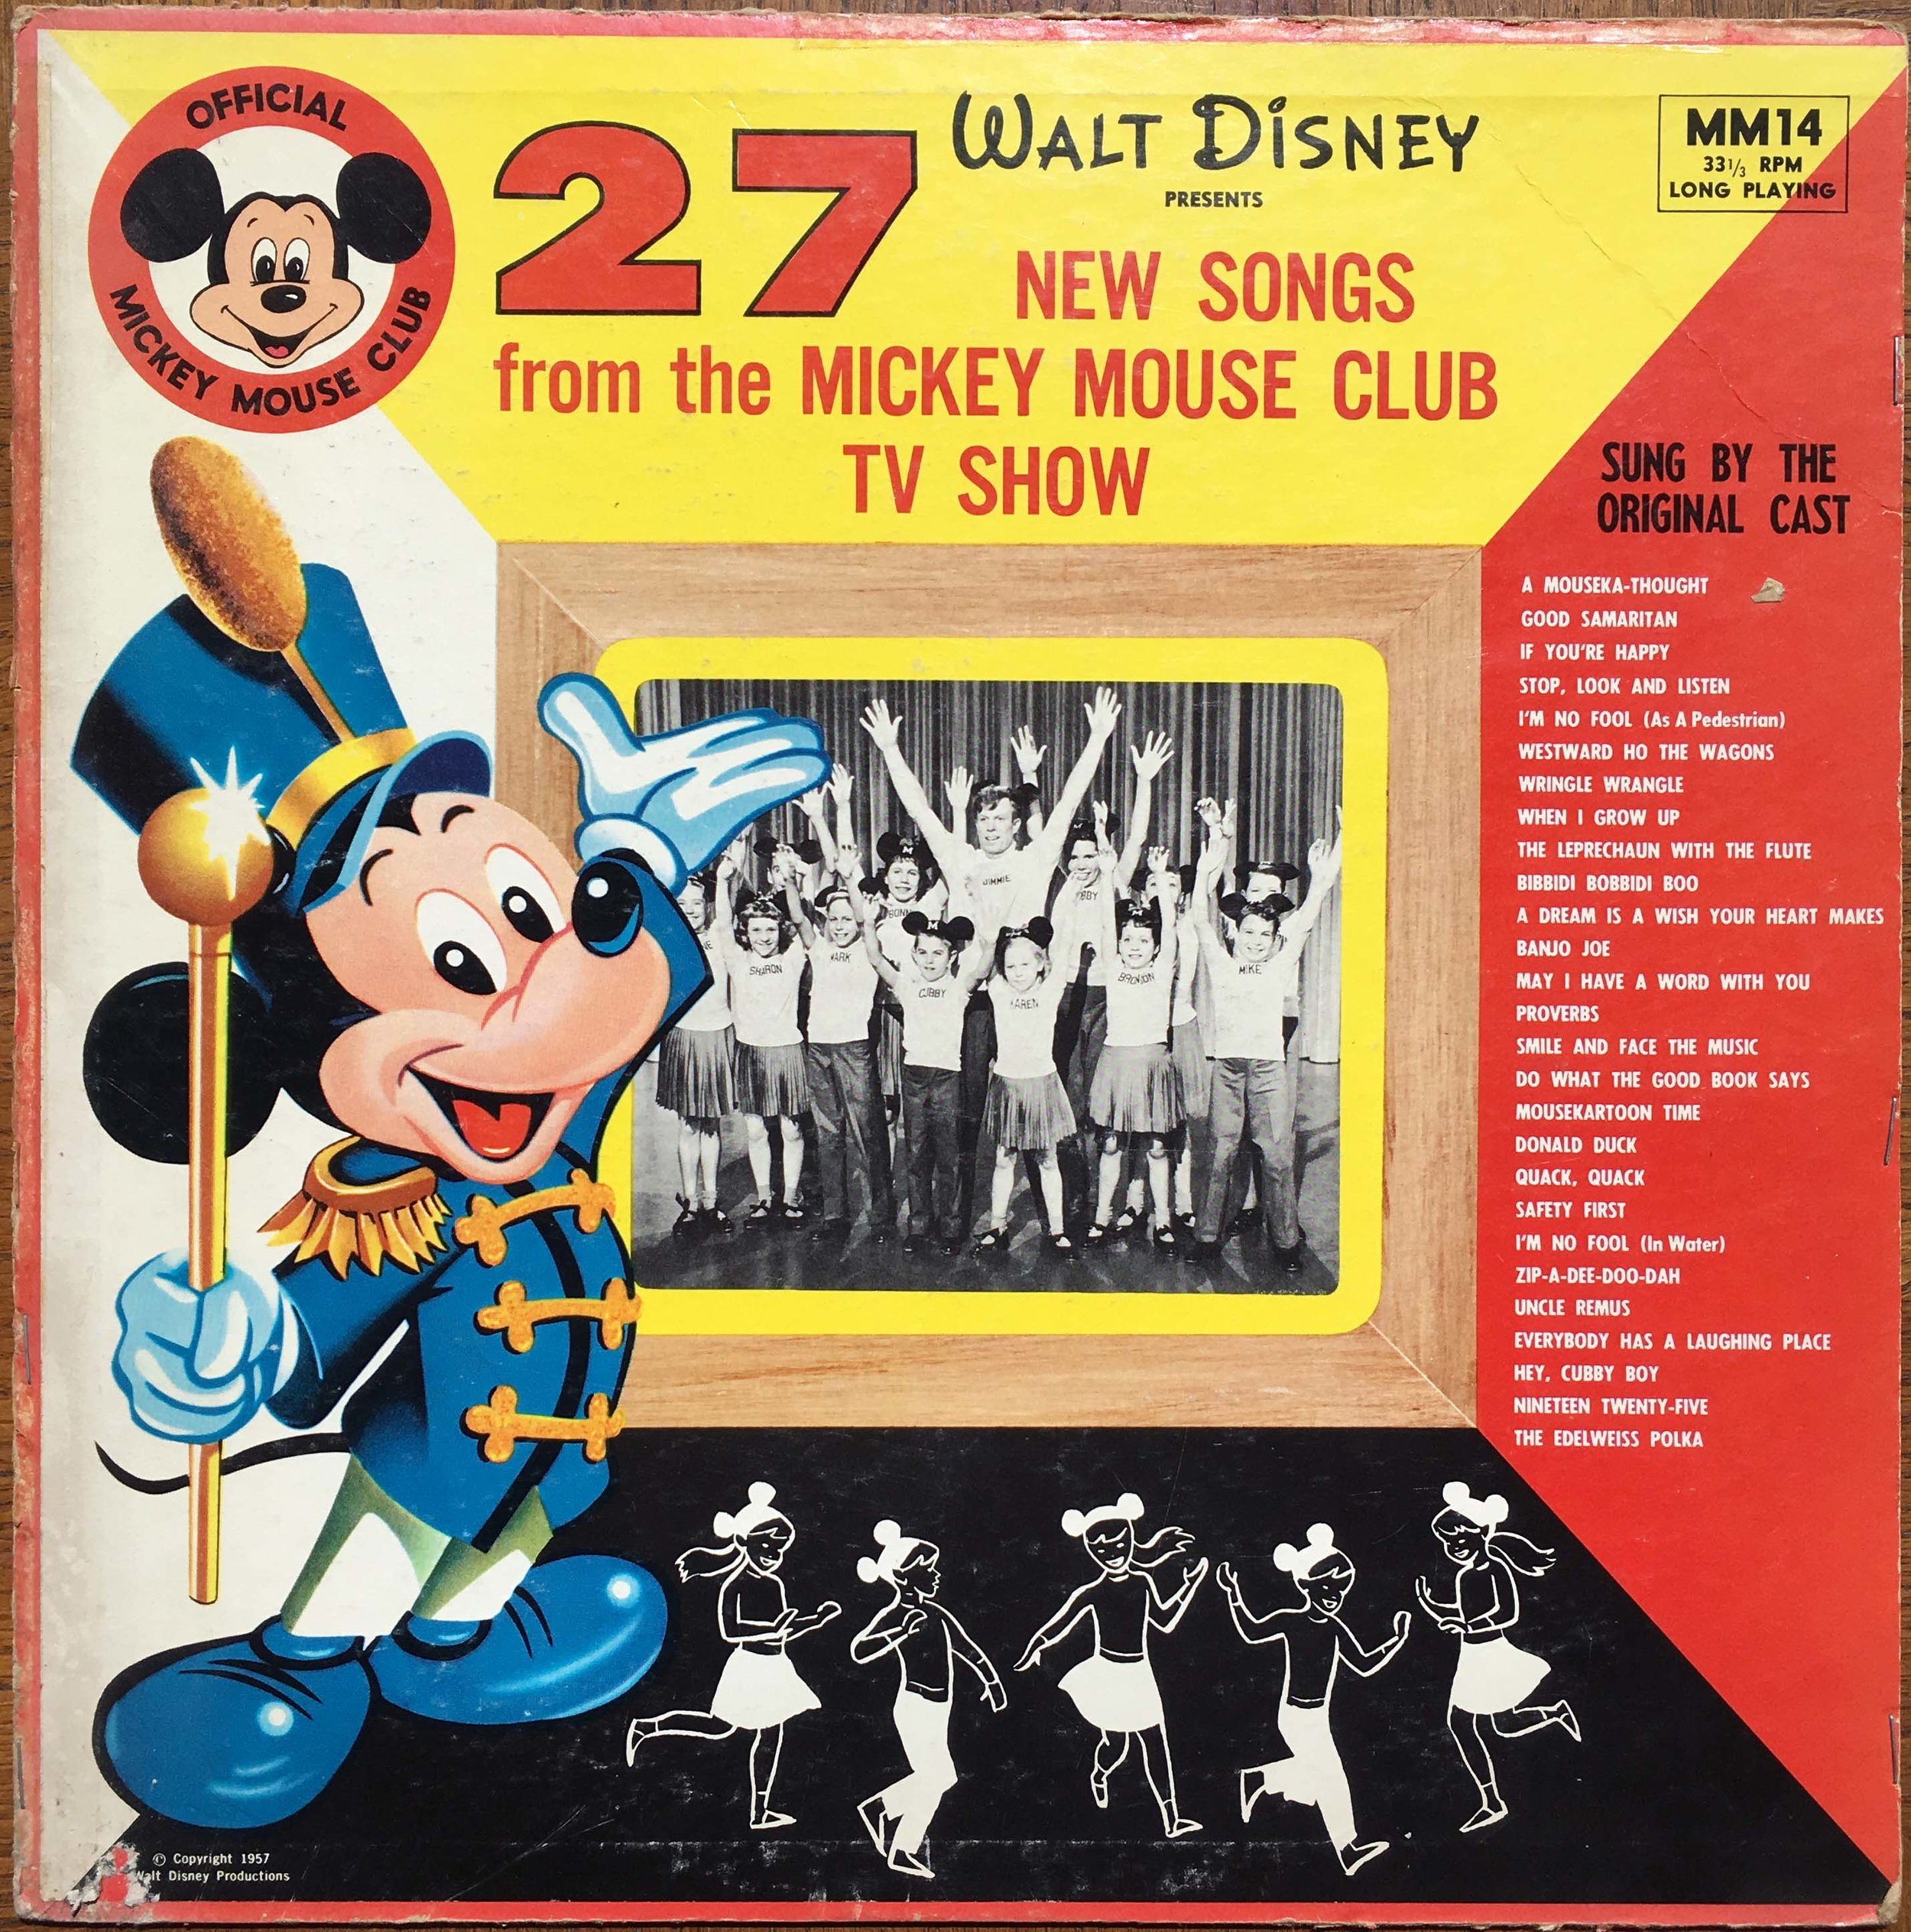 NEW SONGS from the MICKEY MOUSE CLUB TV SHOW